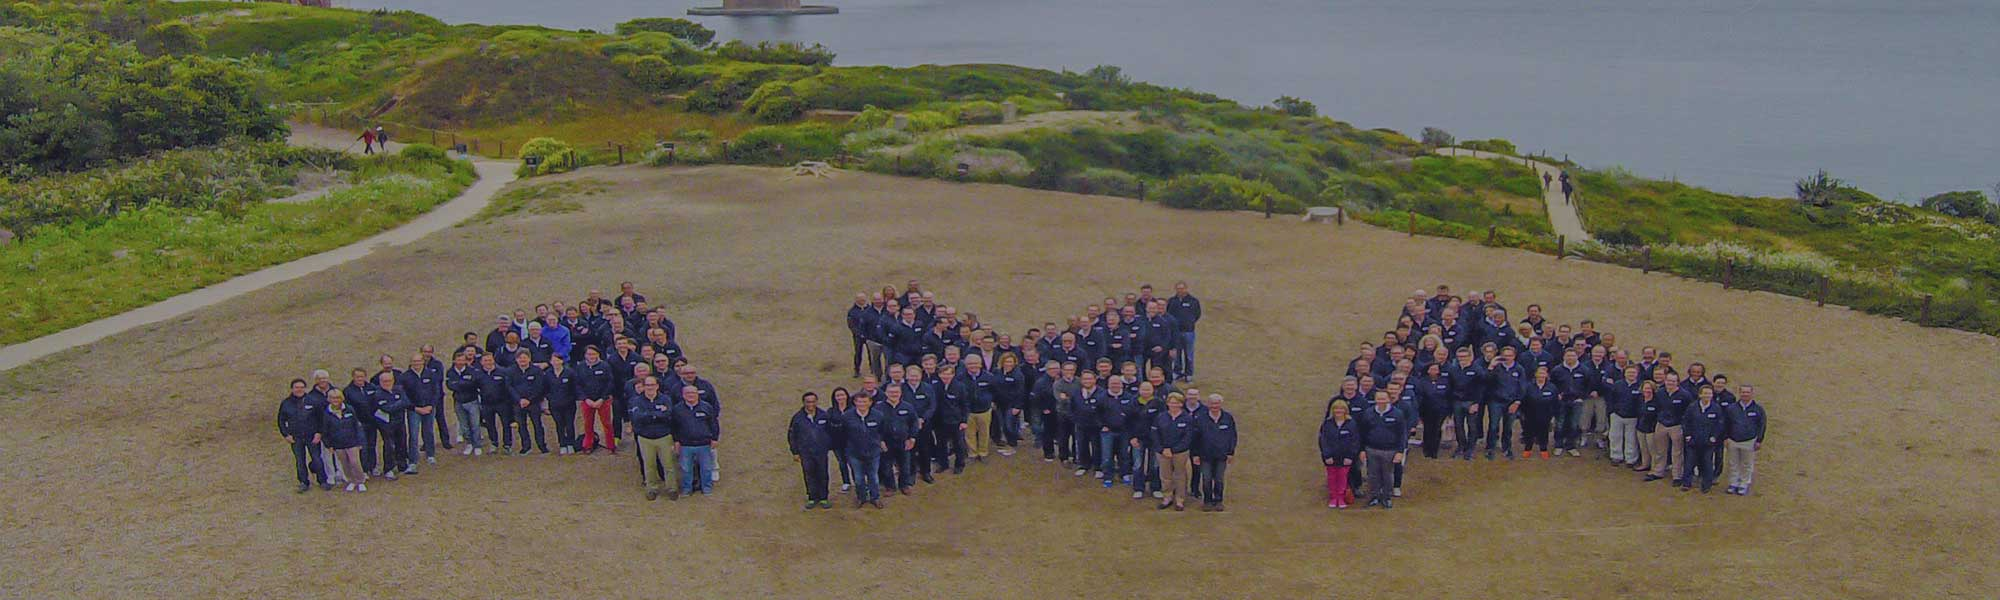 people forming axa logo in SF